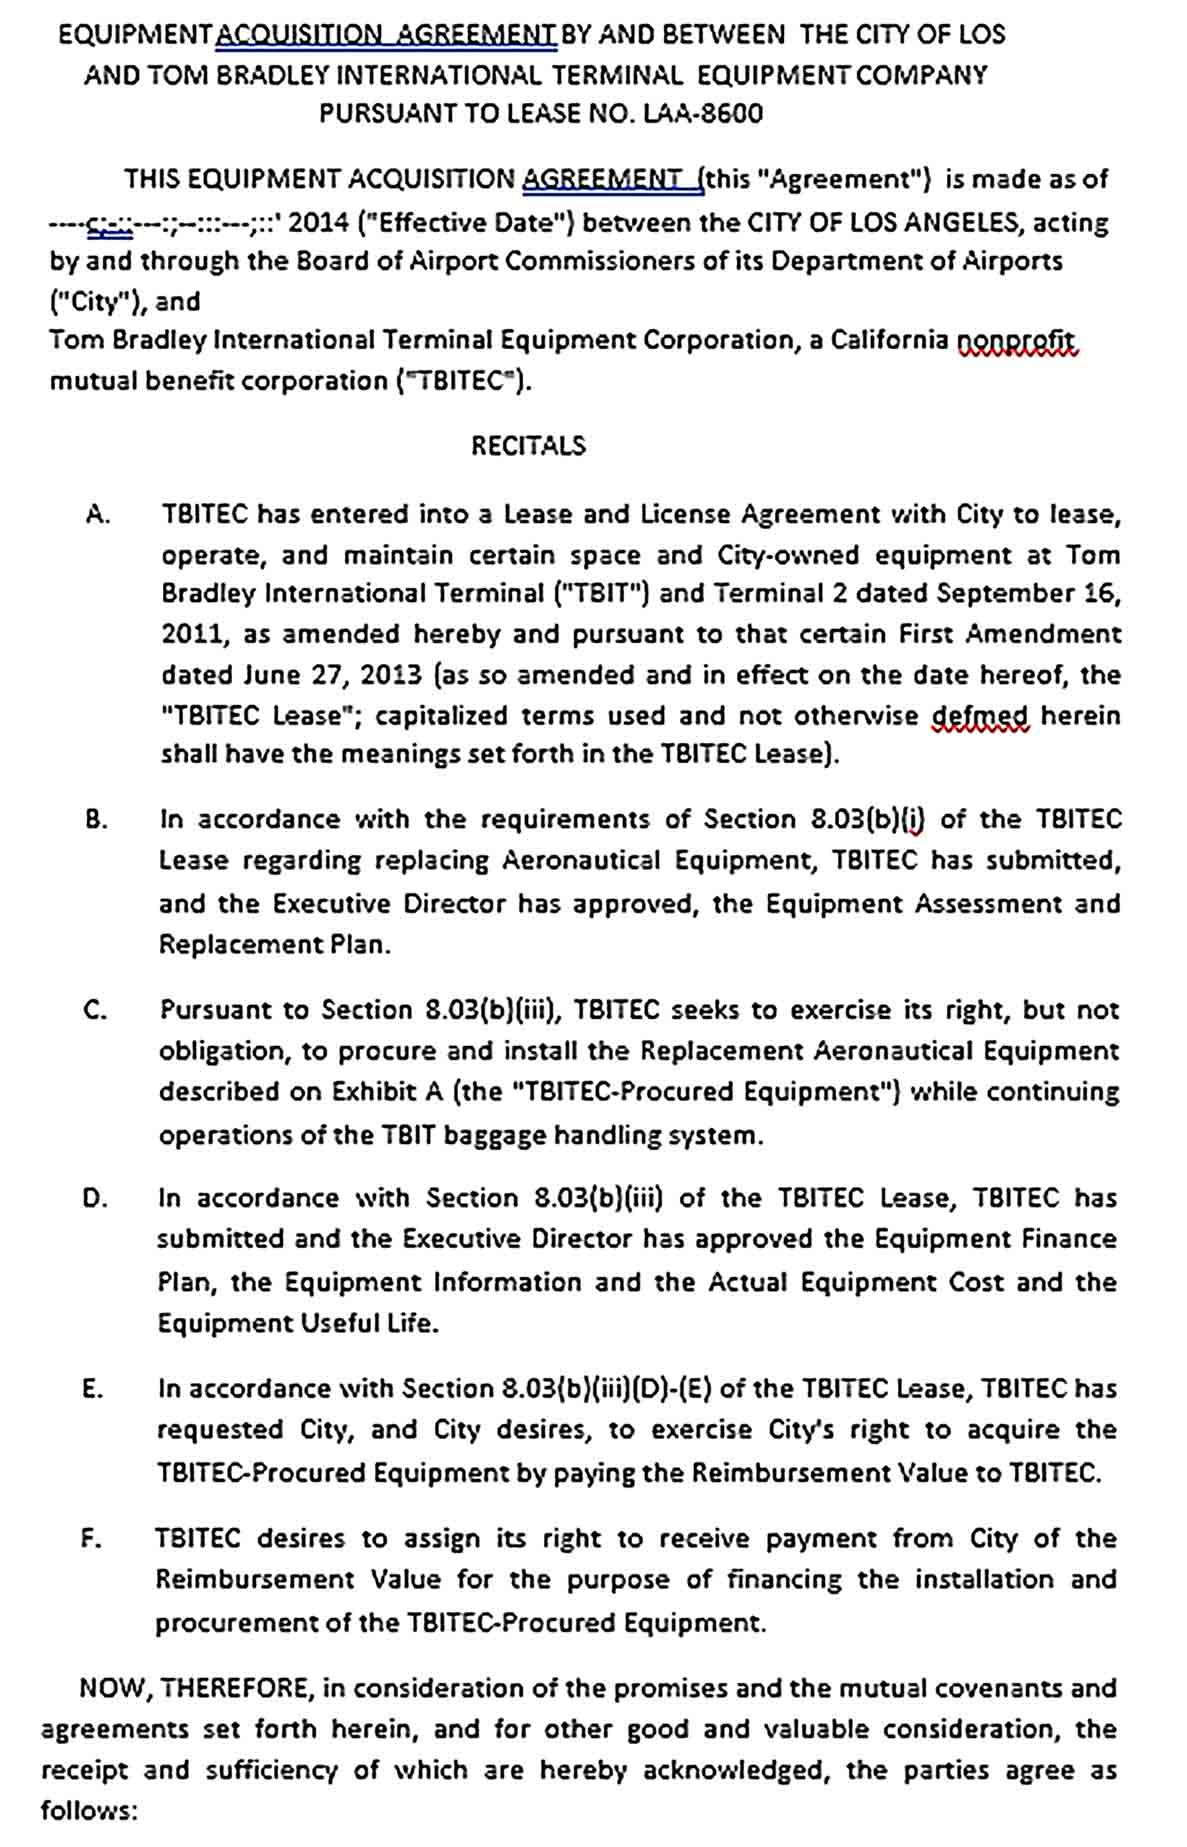 Sample Acquisition Agreement Template